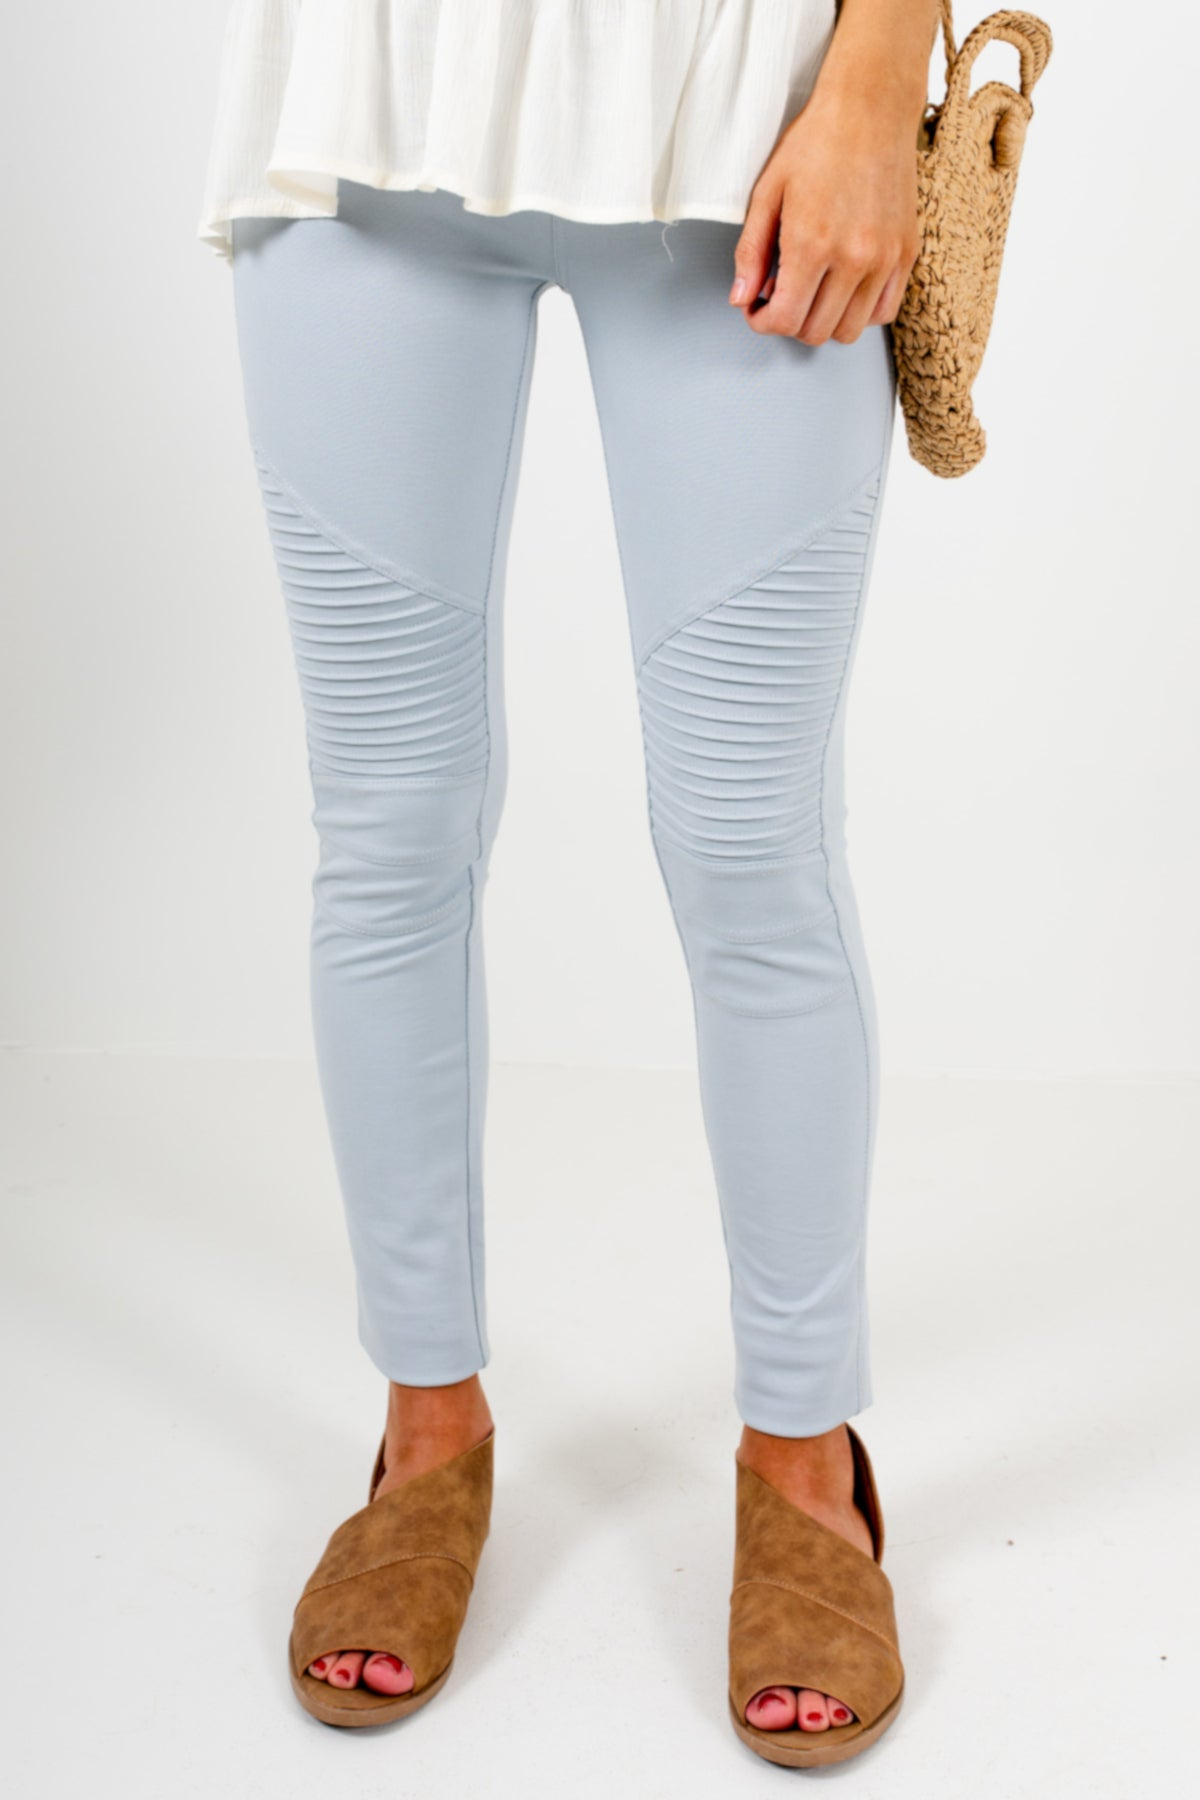 Sky Blue Cute Moto Jeggings Jean Leggings Affordable Online Boutique